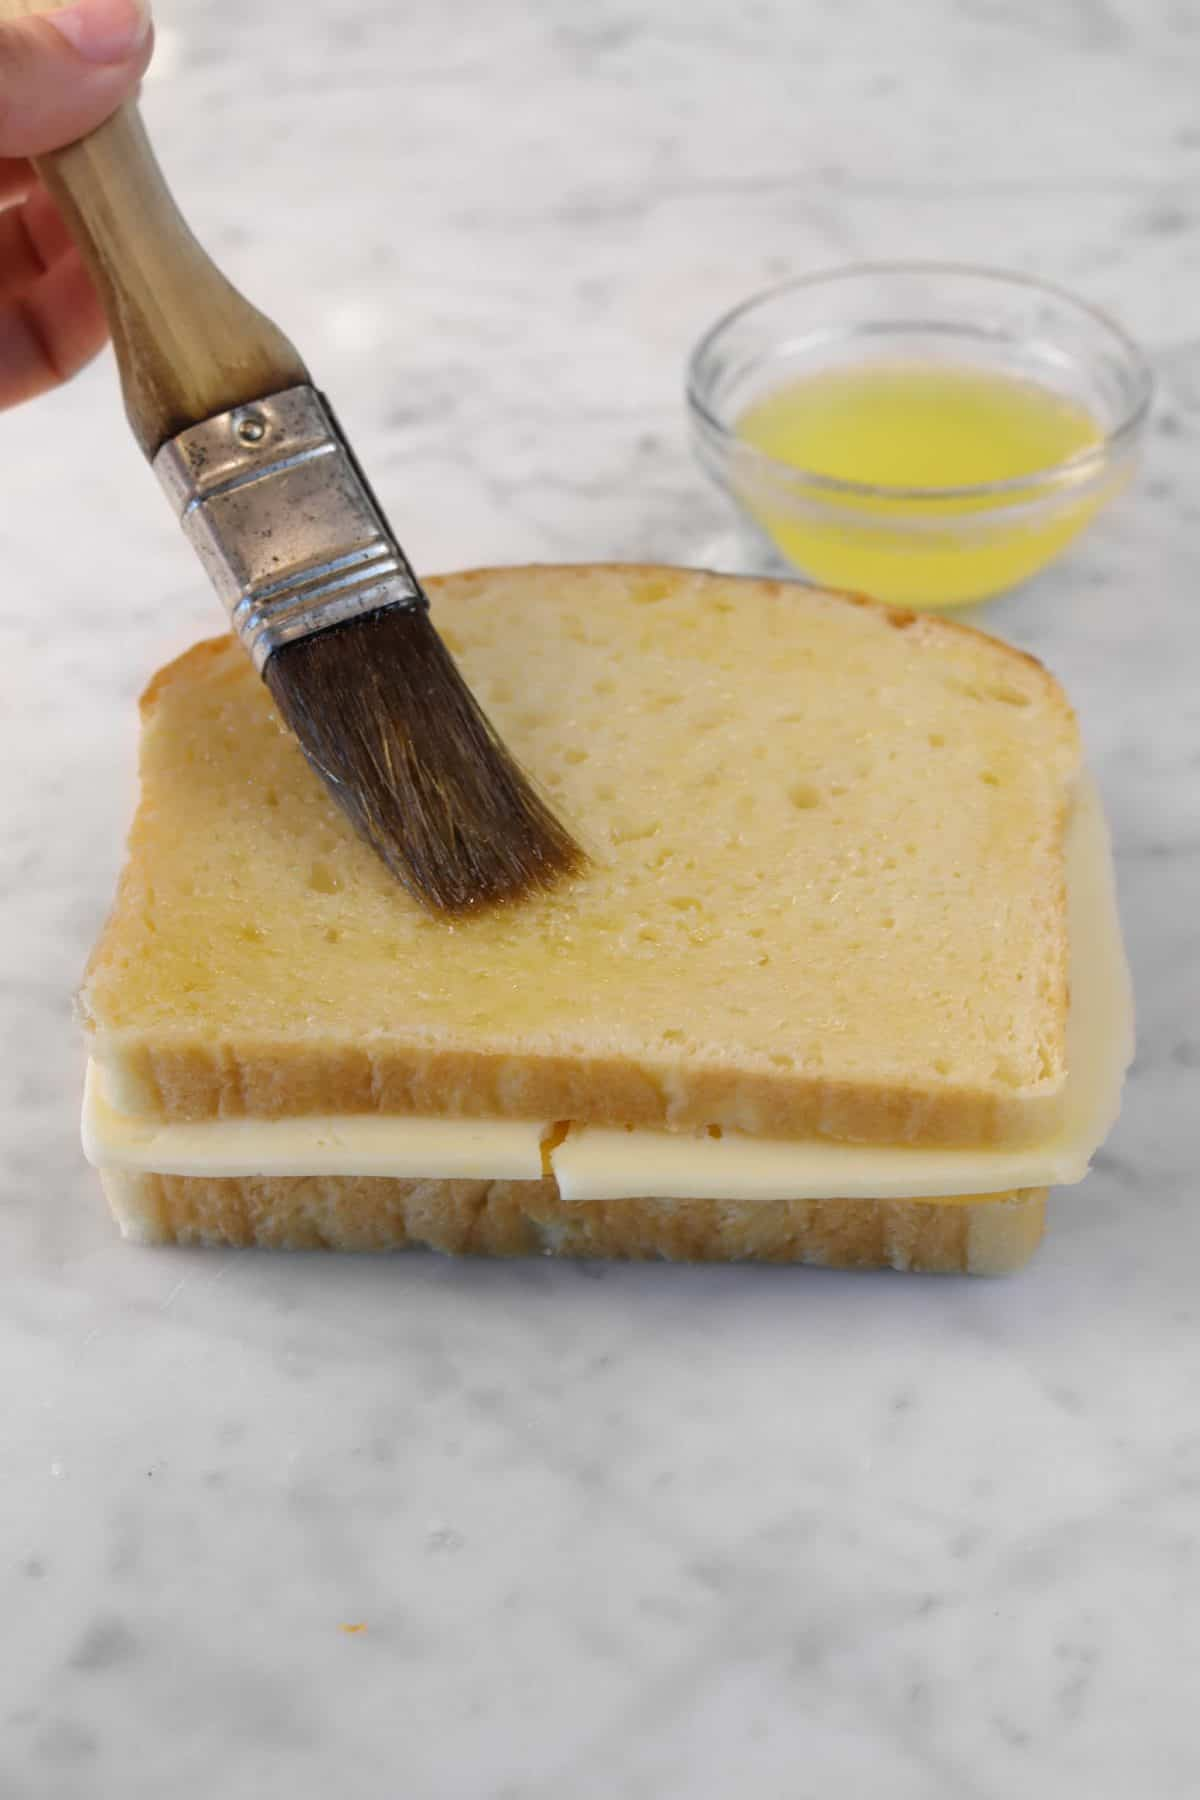 butter being brushed onto cheese sandwich